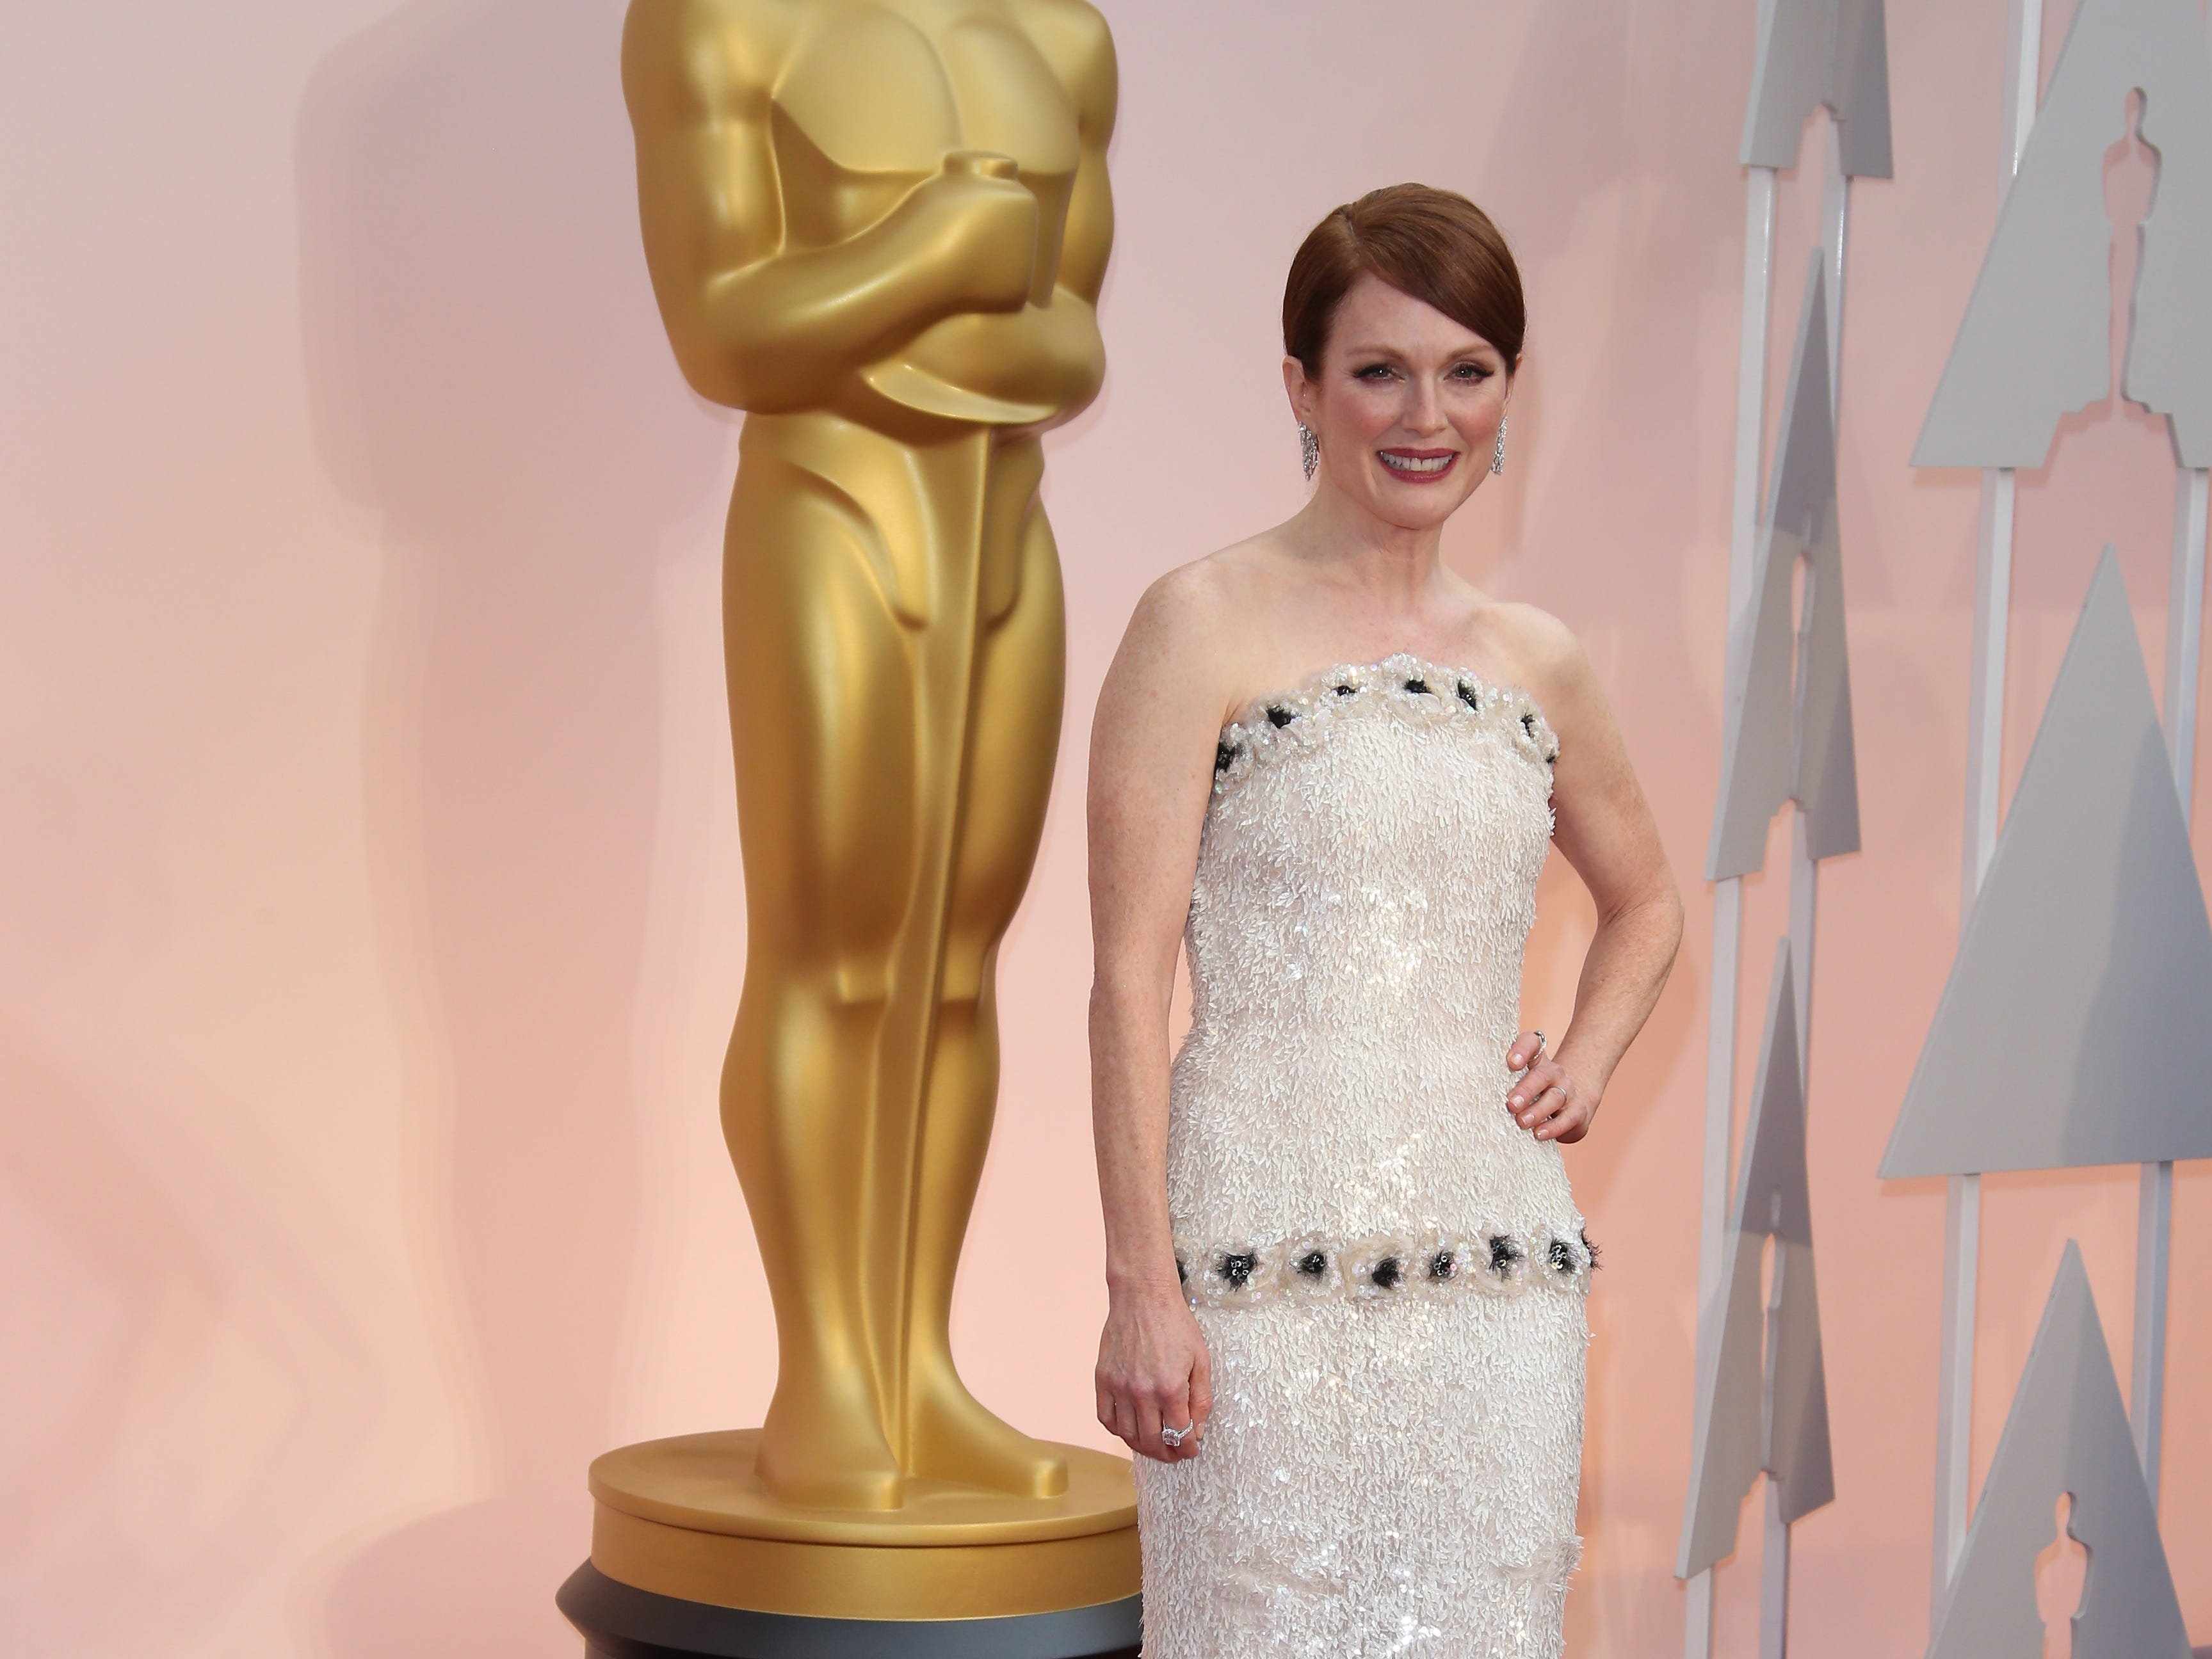 Julianne Moore arrives at the 87th annual Academy Awards at the Dolby Theatre in 2015.